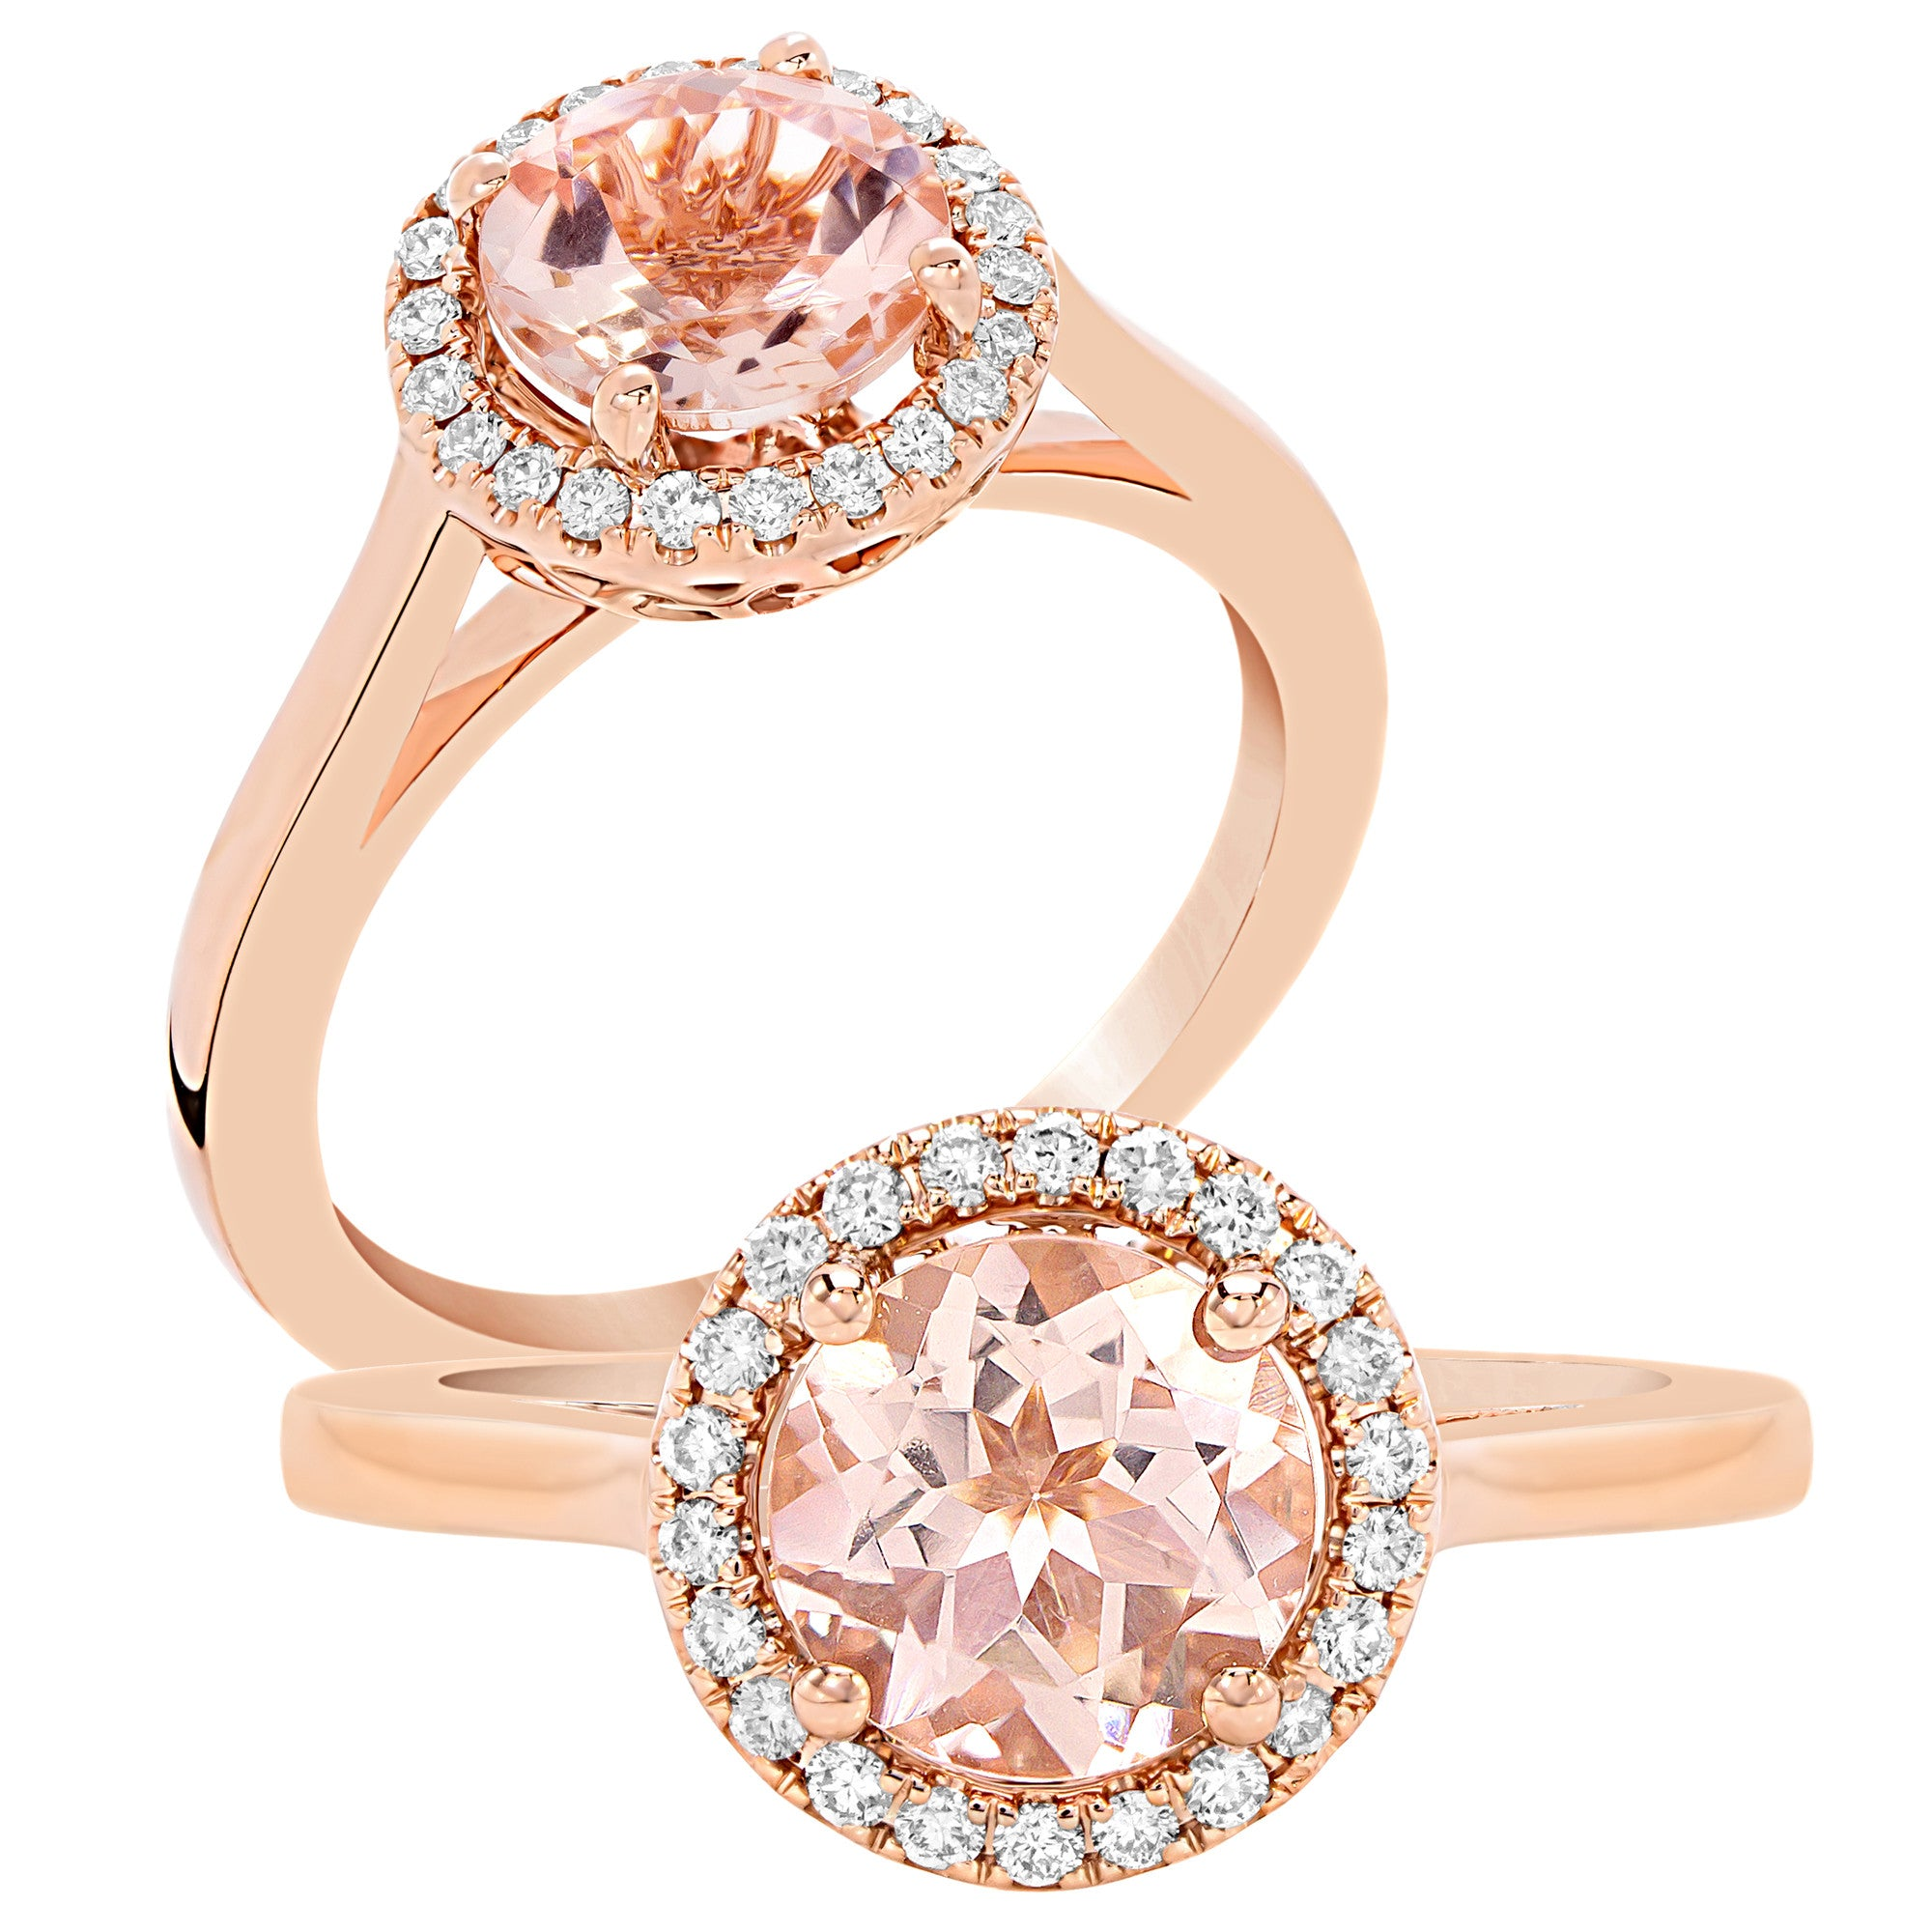 diamond by and la more morganite matching in band gold pebble set products ring design oval rose floral cut bridal solitaire wedding